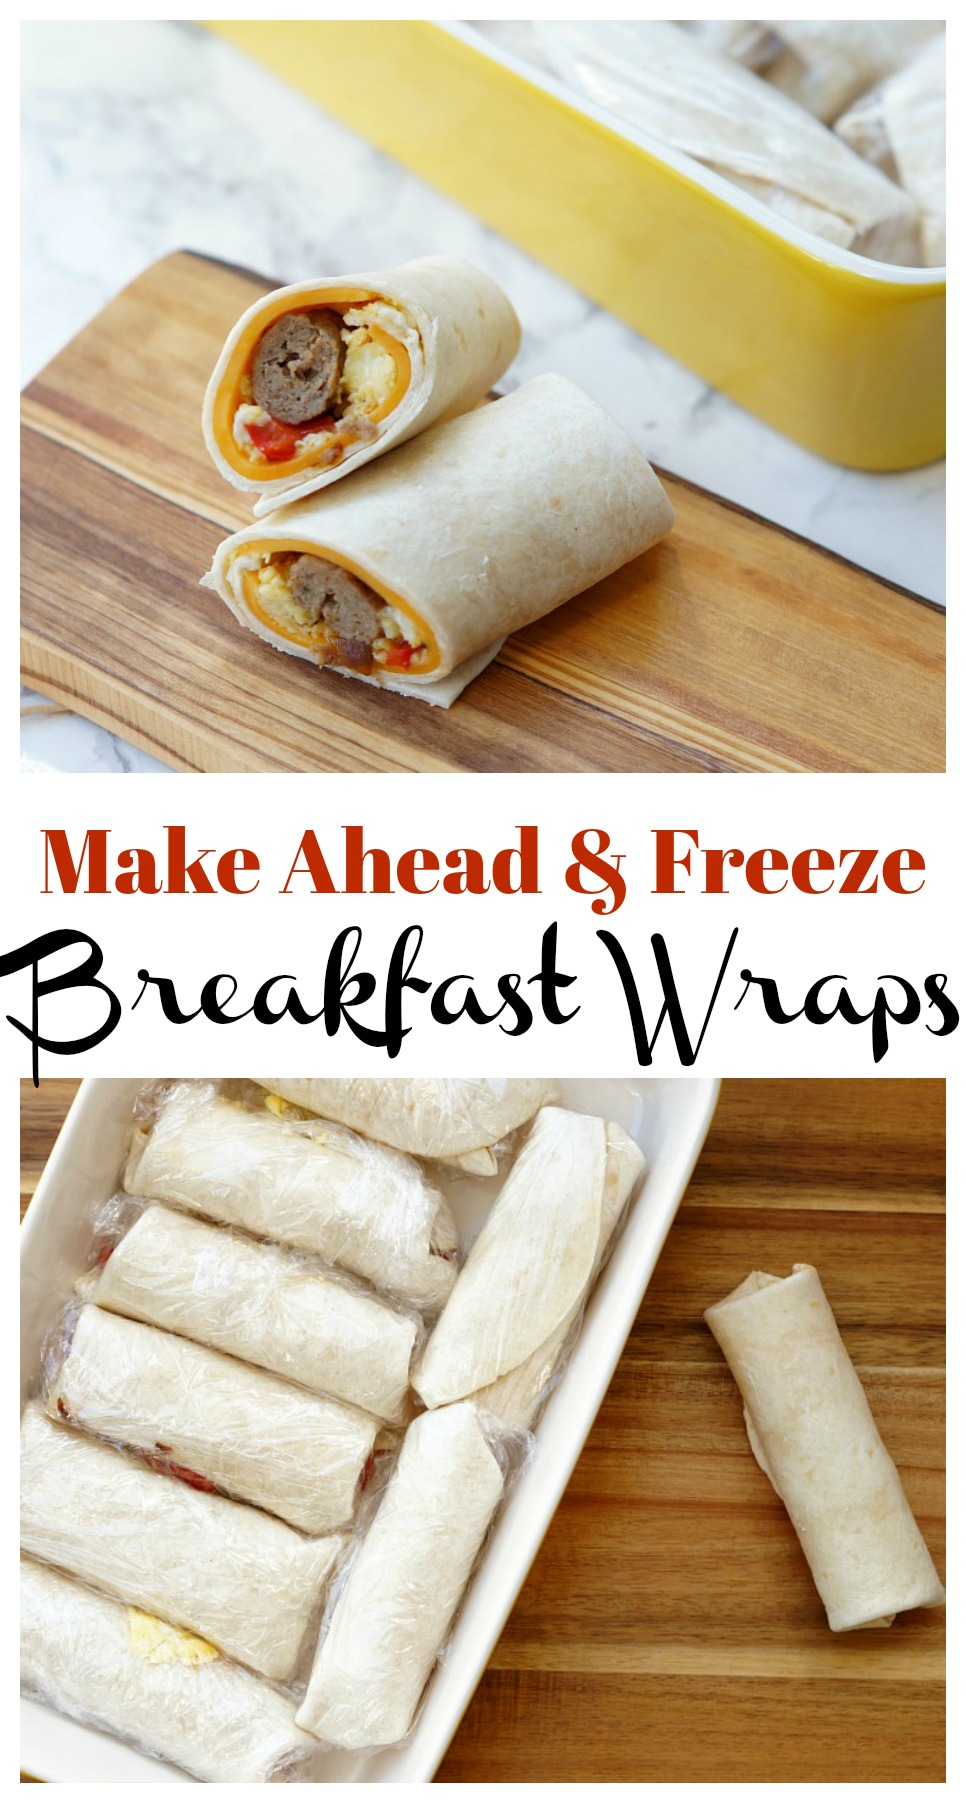 Make Ahead Breakfast Wraps. Sausage, egg, cheese, and veggie are all wrapped up for a quick breakfast!